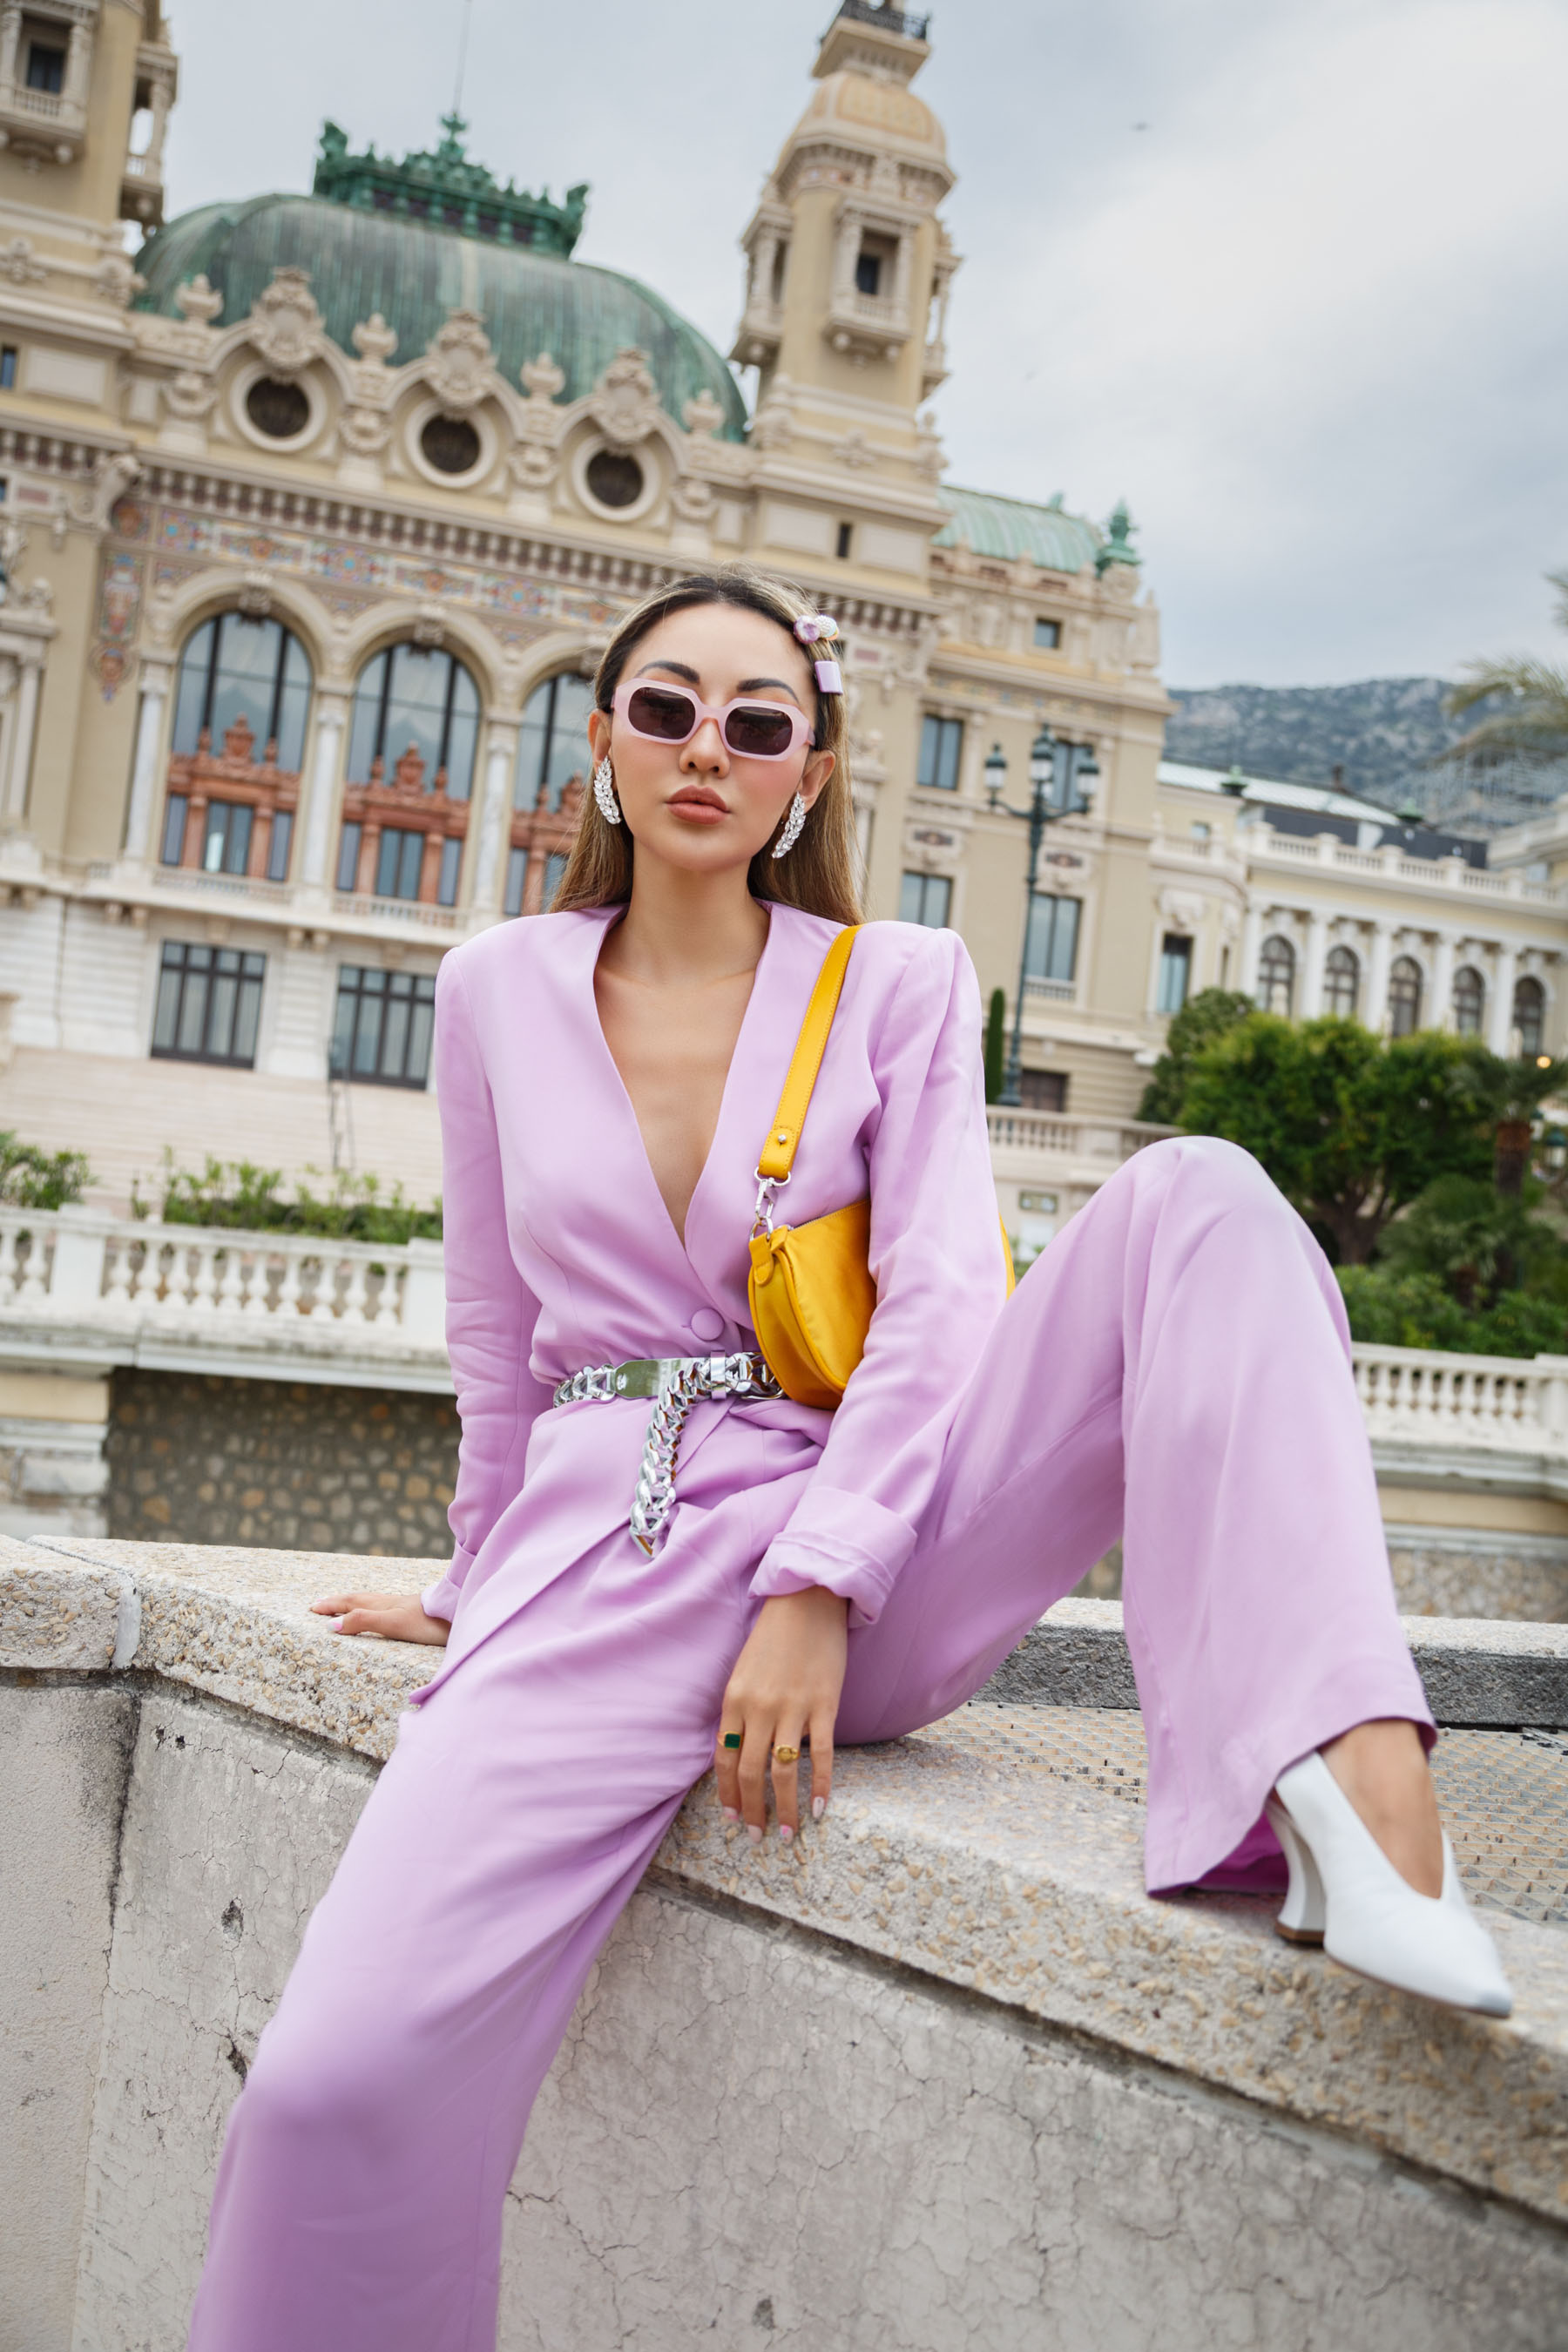 summer trends to retire, white sunglasses, lavender suit, hair pins hairstyle // Notjessfashion.com